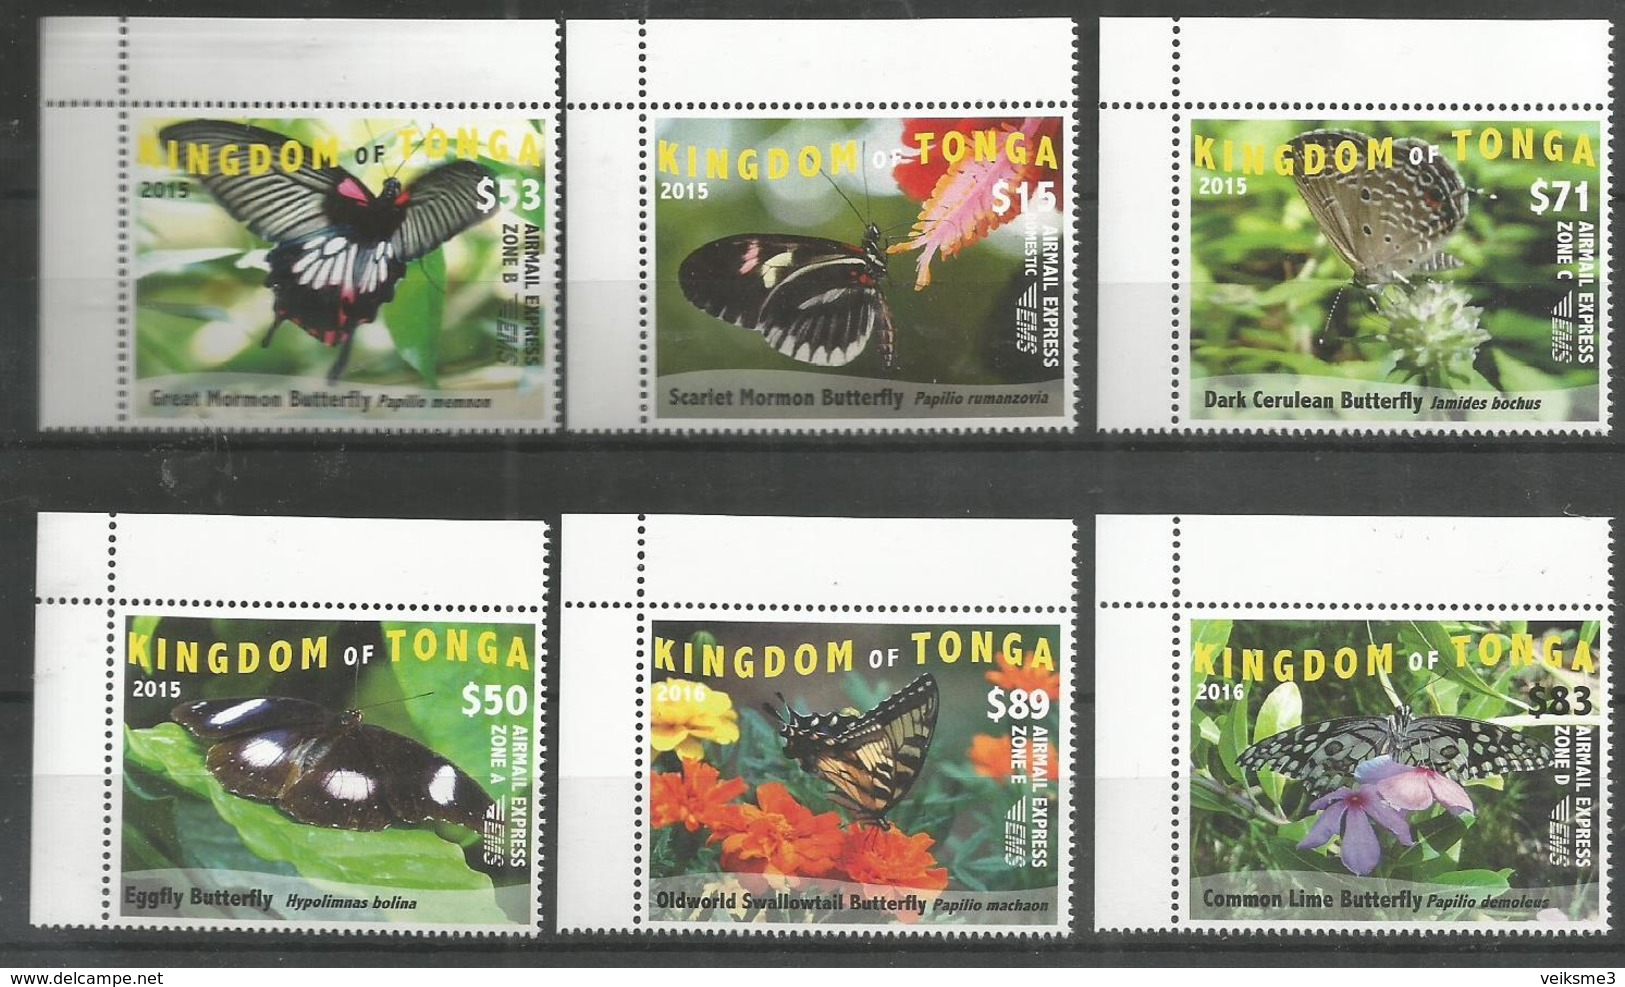 KINGDOM OF TONGA - MNH - Animals - Insects - Butterflies 2015 - 2016 - Schmetterlinge